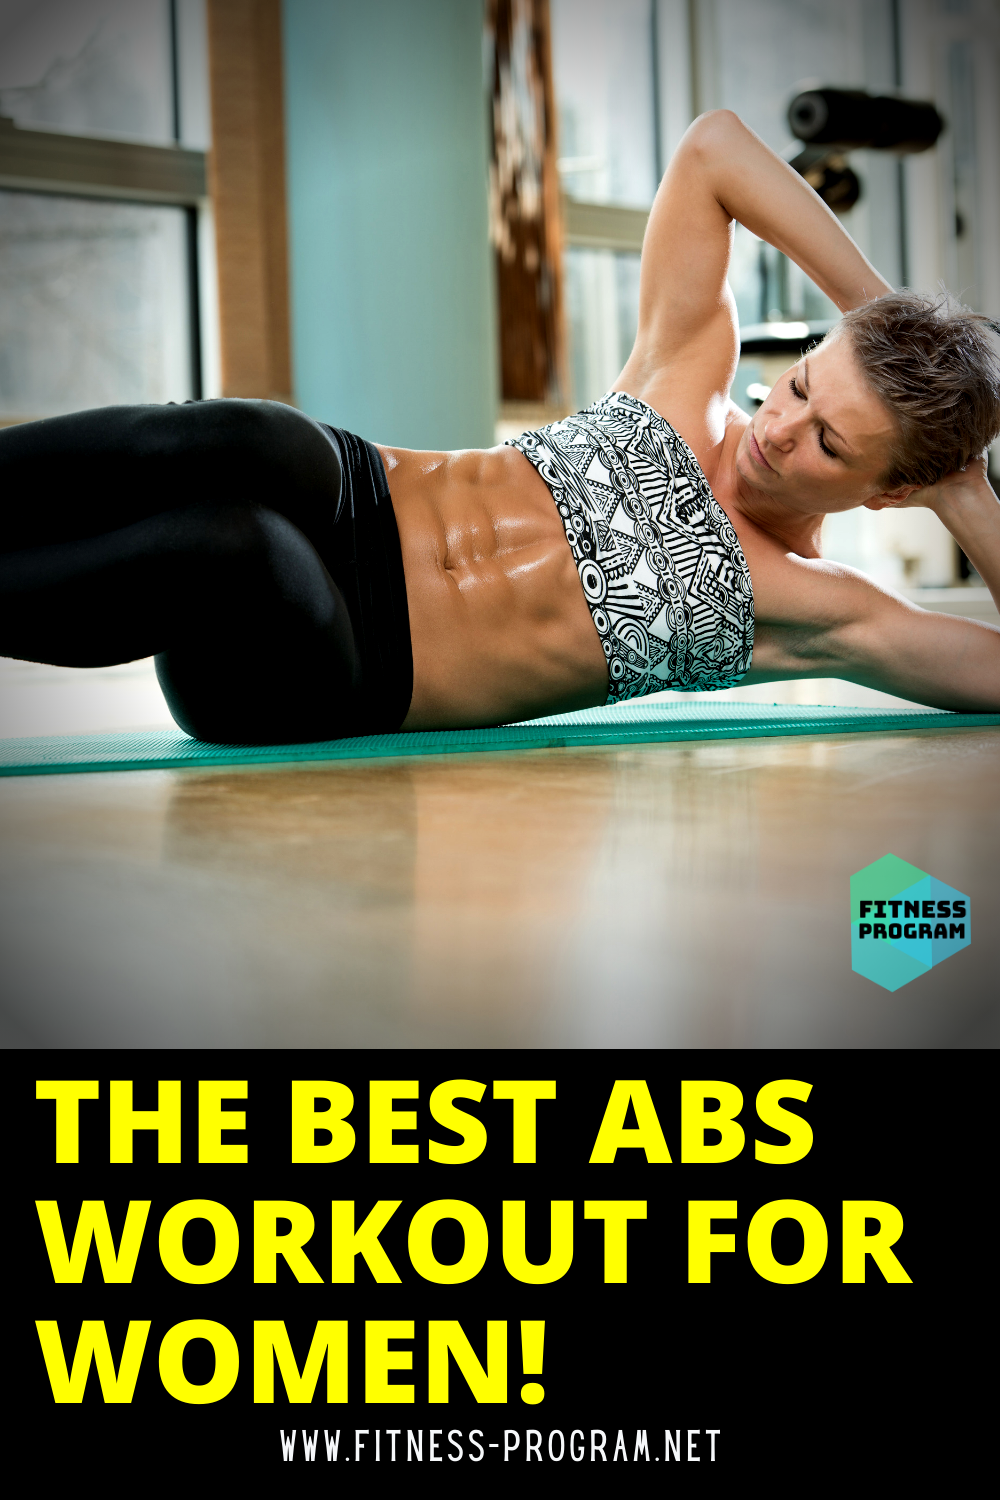 Tone your Abs with this Free home workout - The Best Lower Ab Workout For Women! #workout #fitness #...